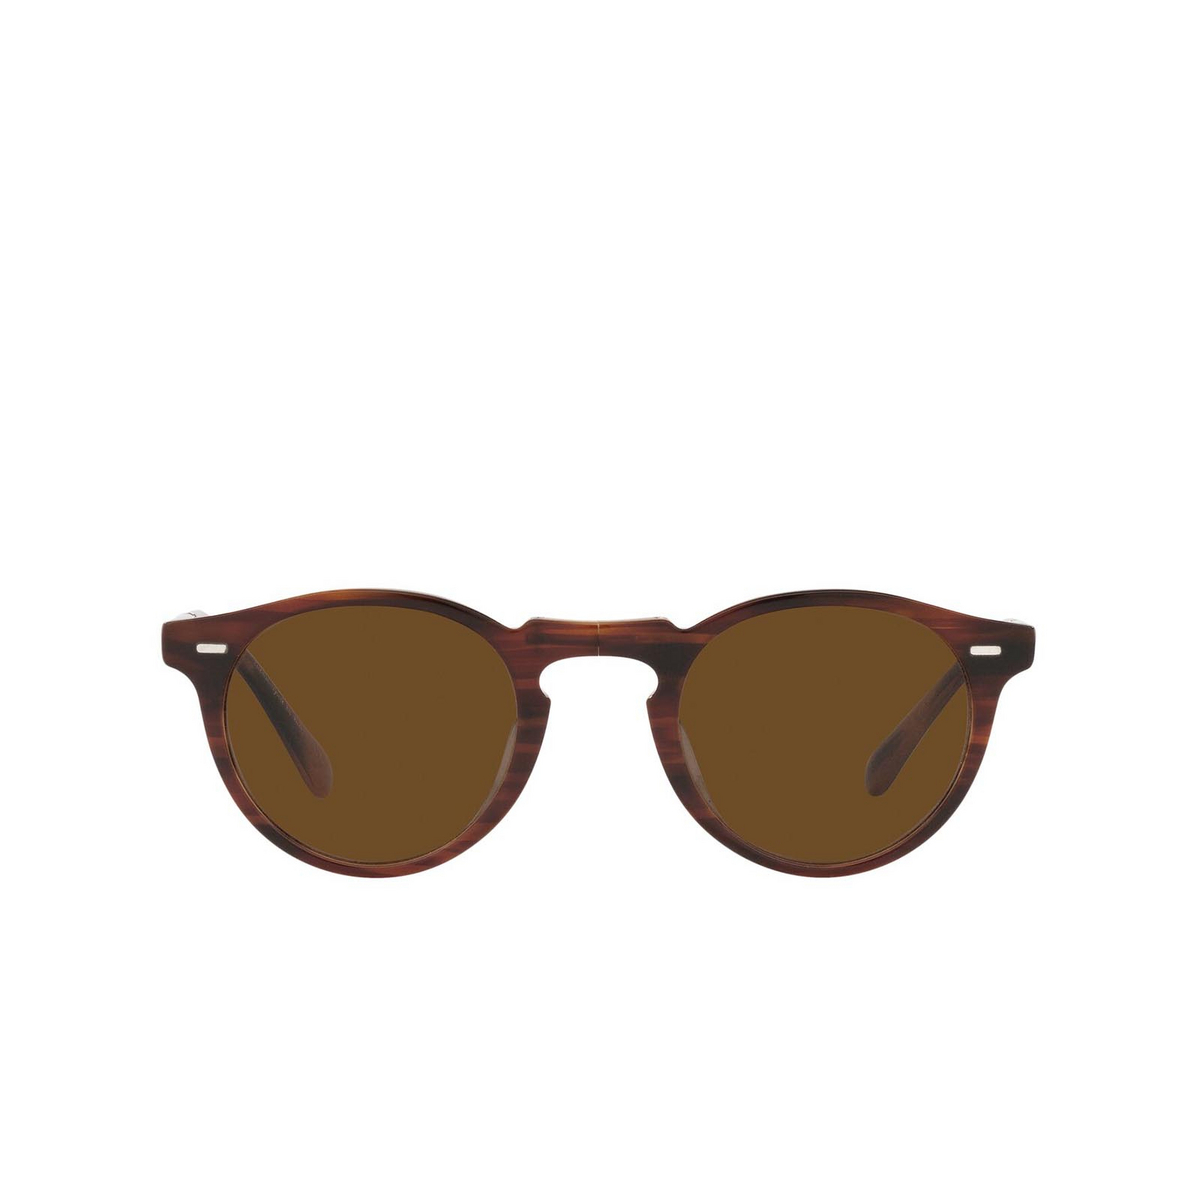 Oliver Peoples® Round Sunglasses: Gregory Peck 1962 OV5456SU color Amaretto / Striped Honey 131057 - front view.